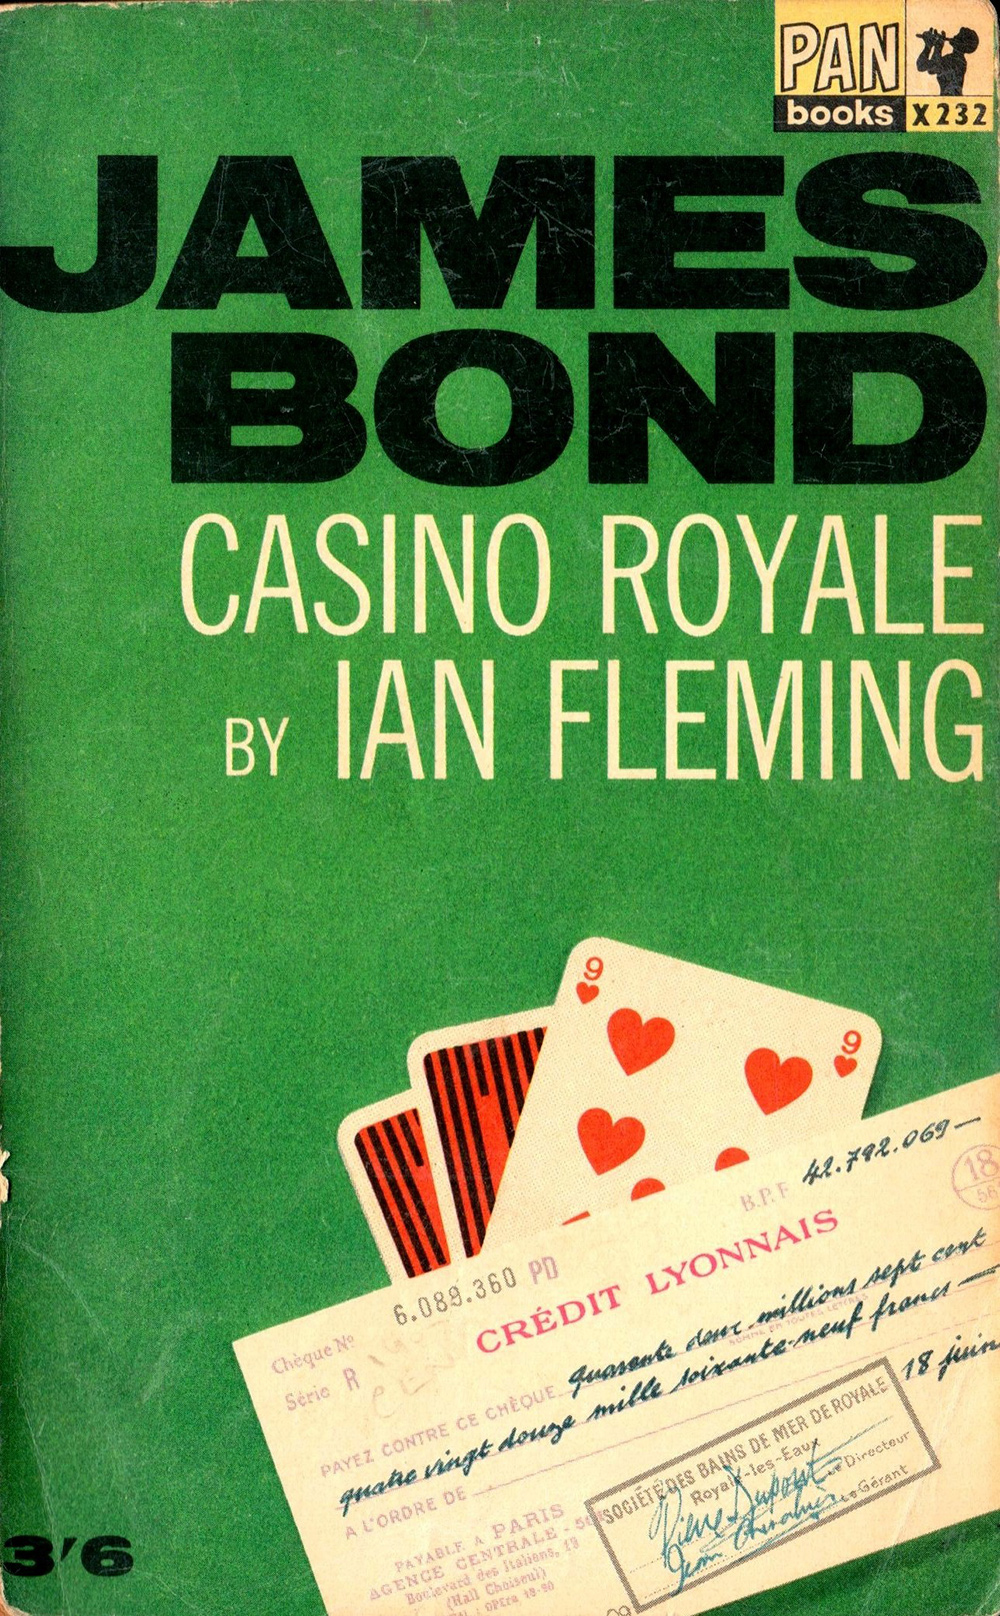 Casino royale book download free casino careers canada